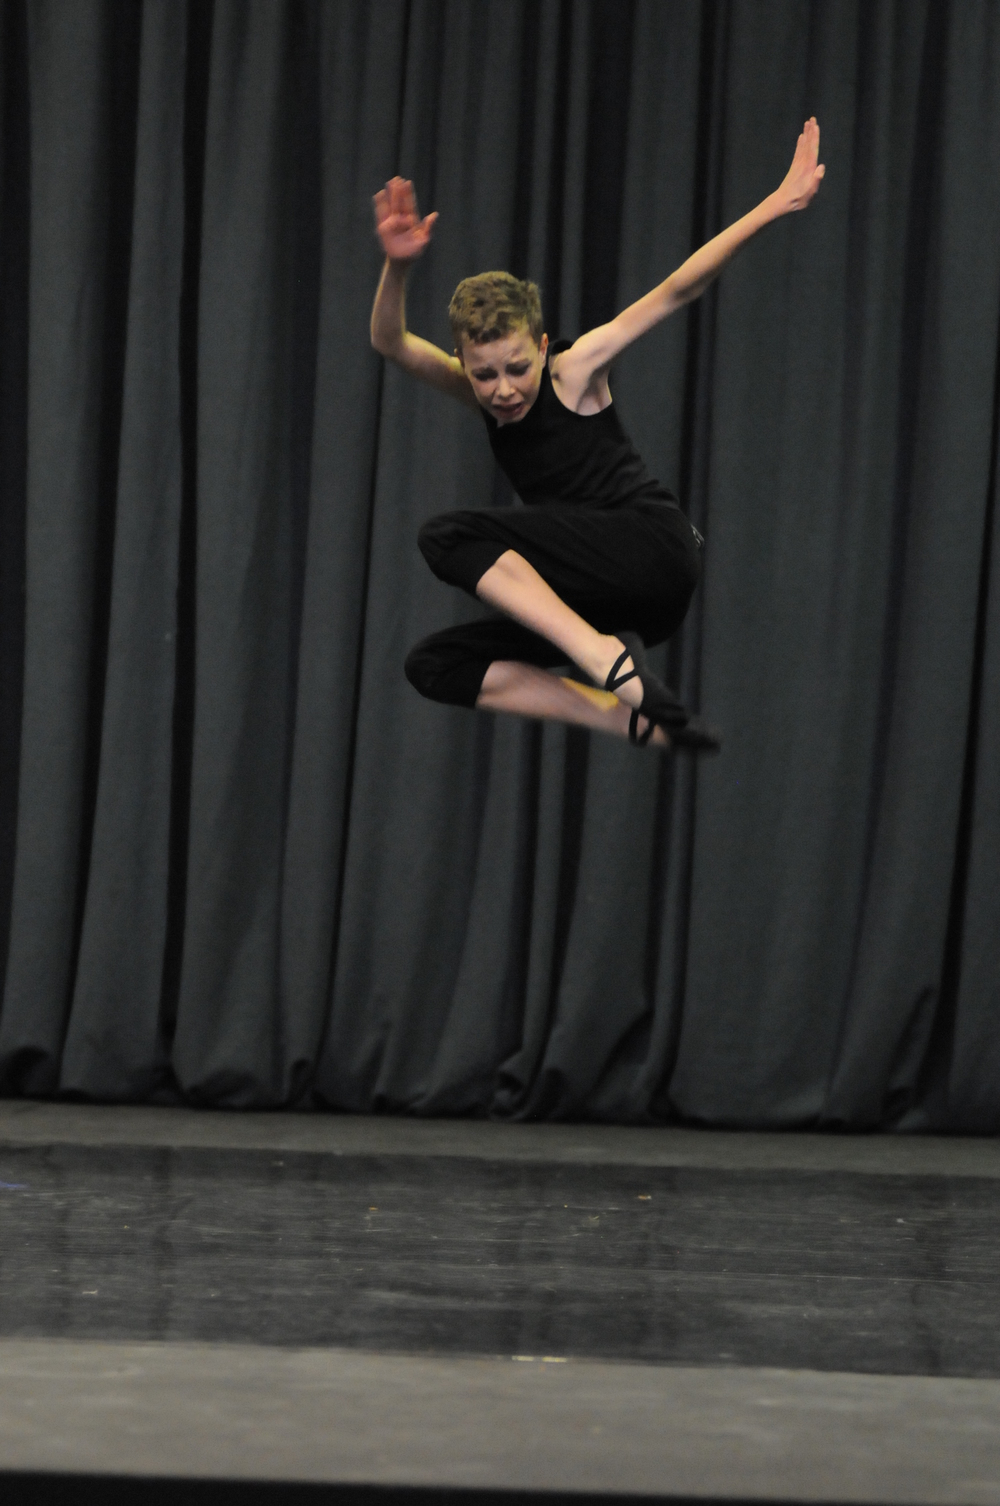 Rohan Hazelton, a student of GDANCE since he was 4 years old, is also an Invitee student at The Australian Ballet School.